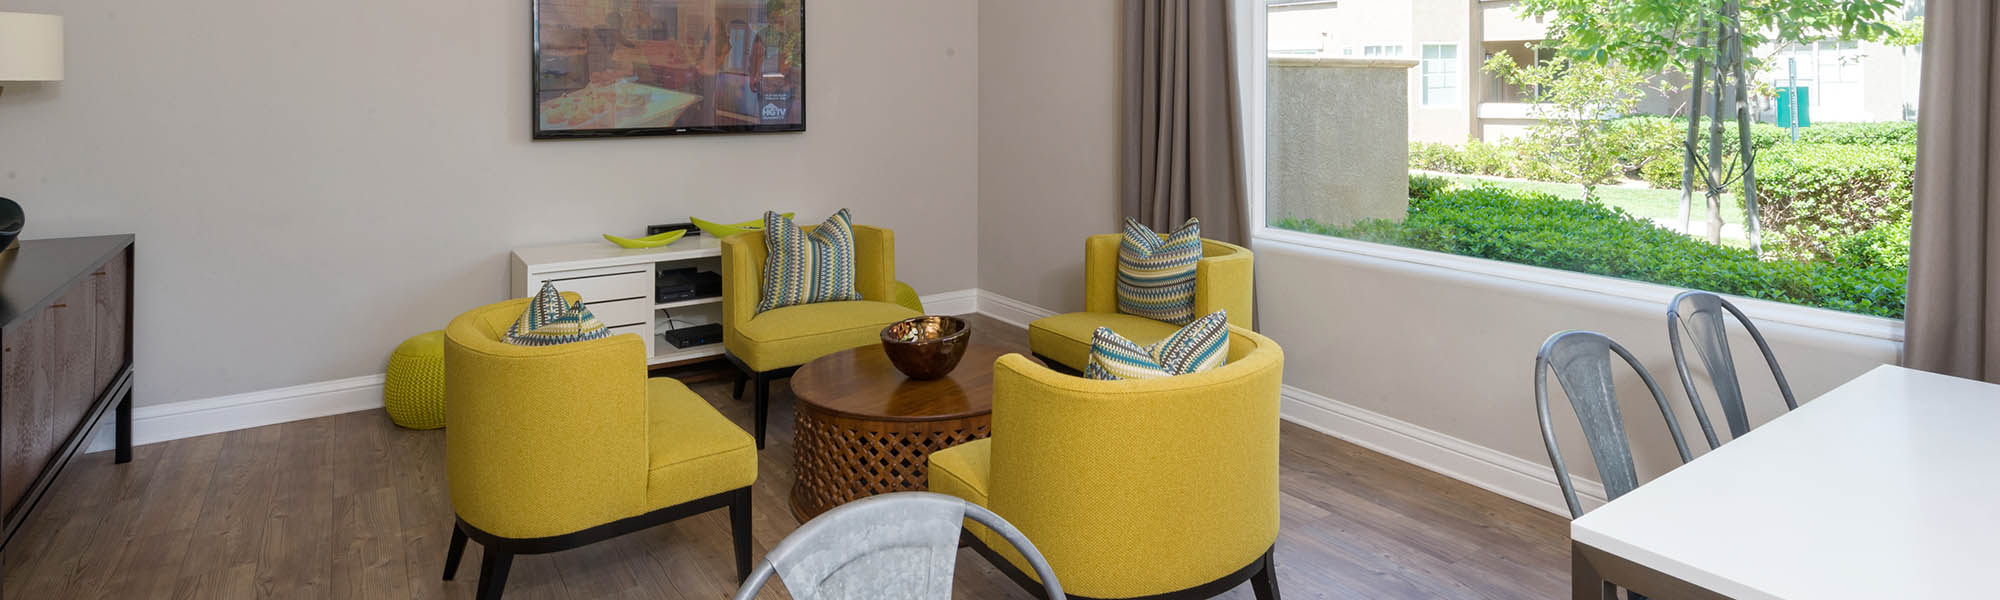 Read reviews of The Artisan Apartment Homes on our website